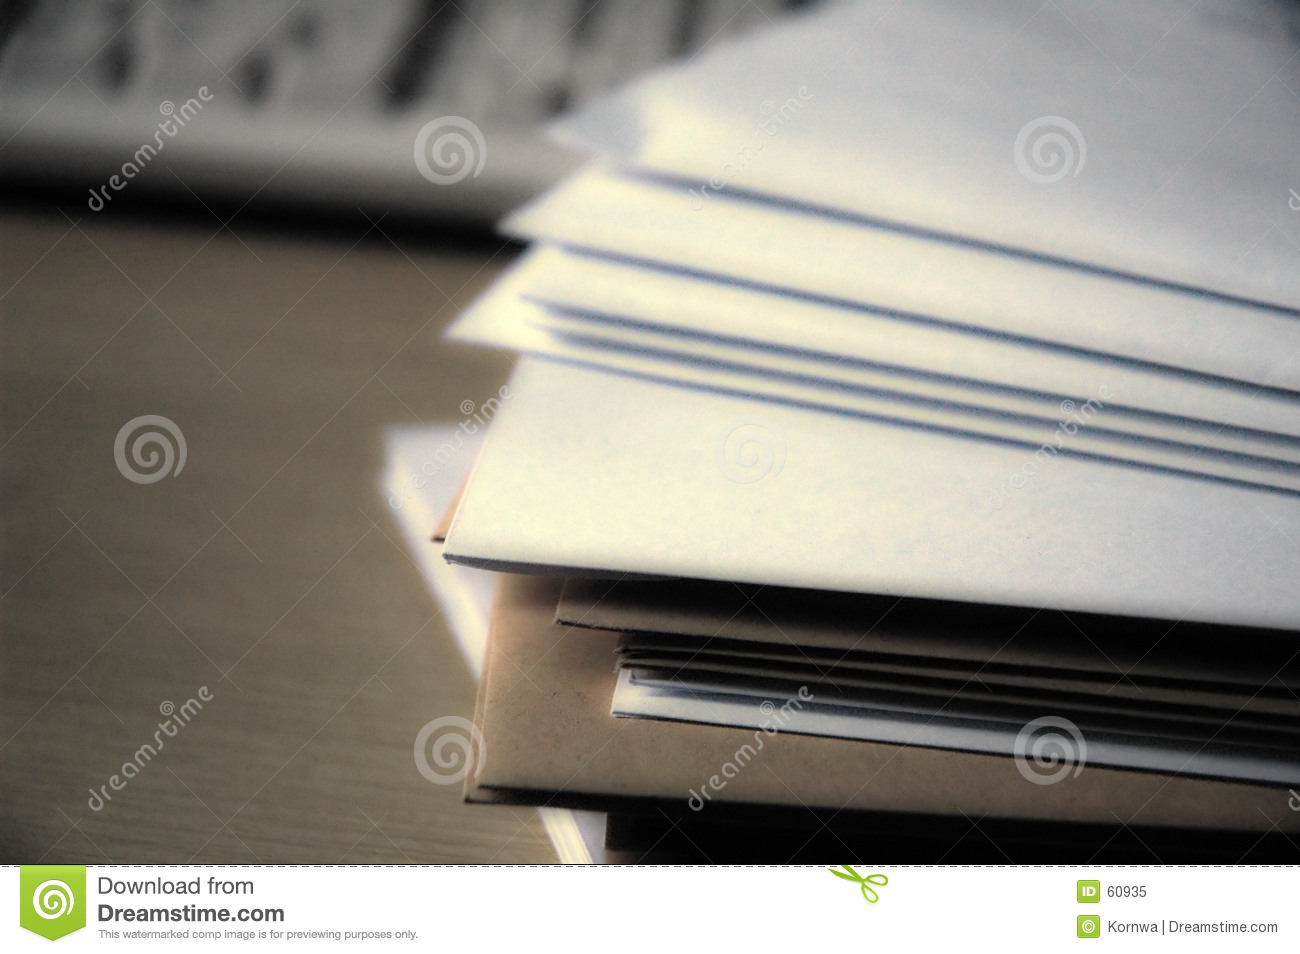 Download Fichiers image stock. Image du lettre, bureau, documents - 60935